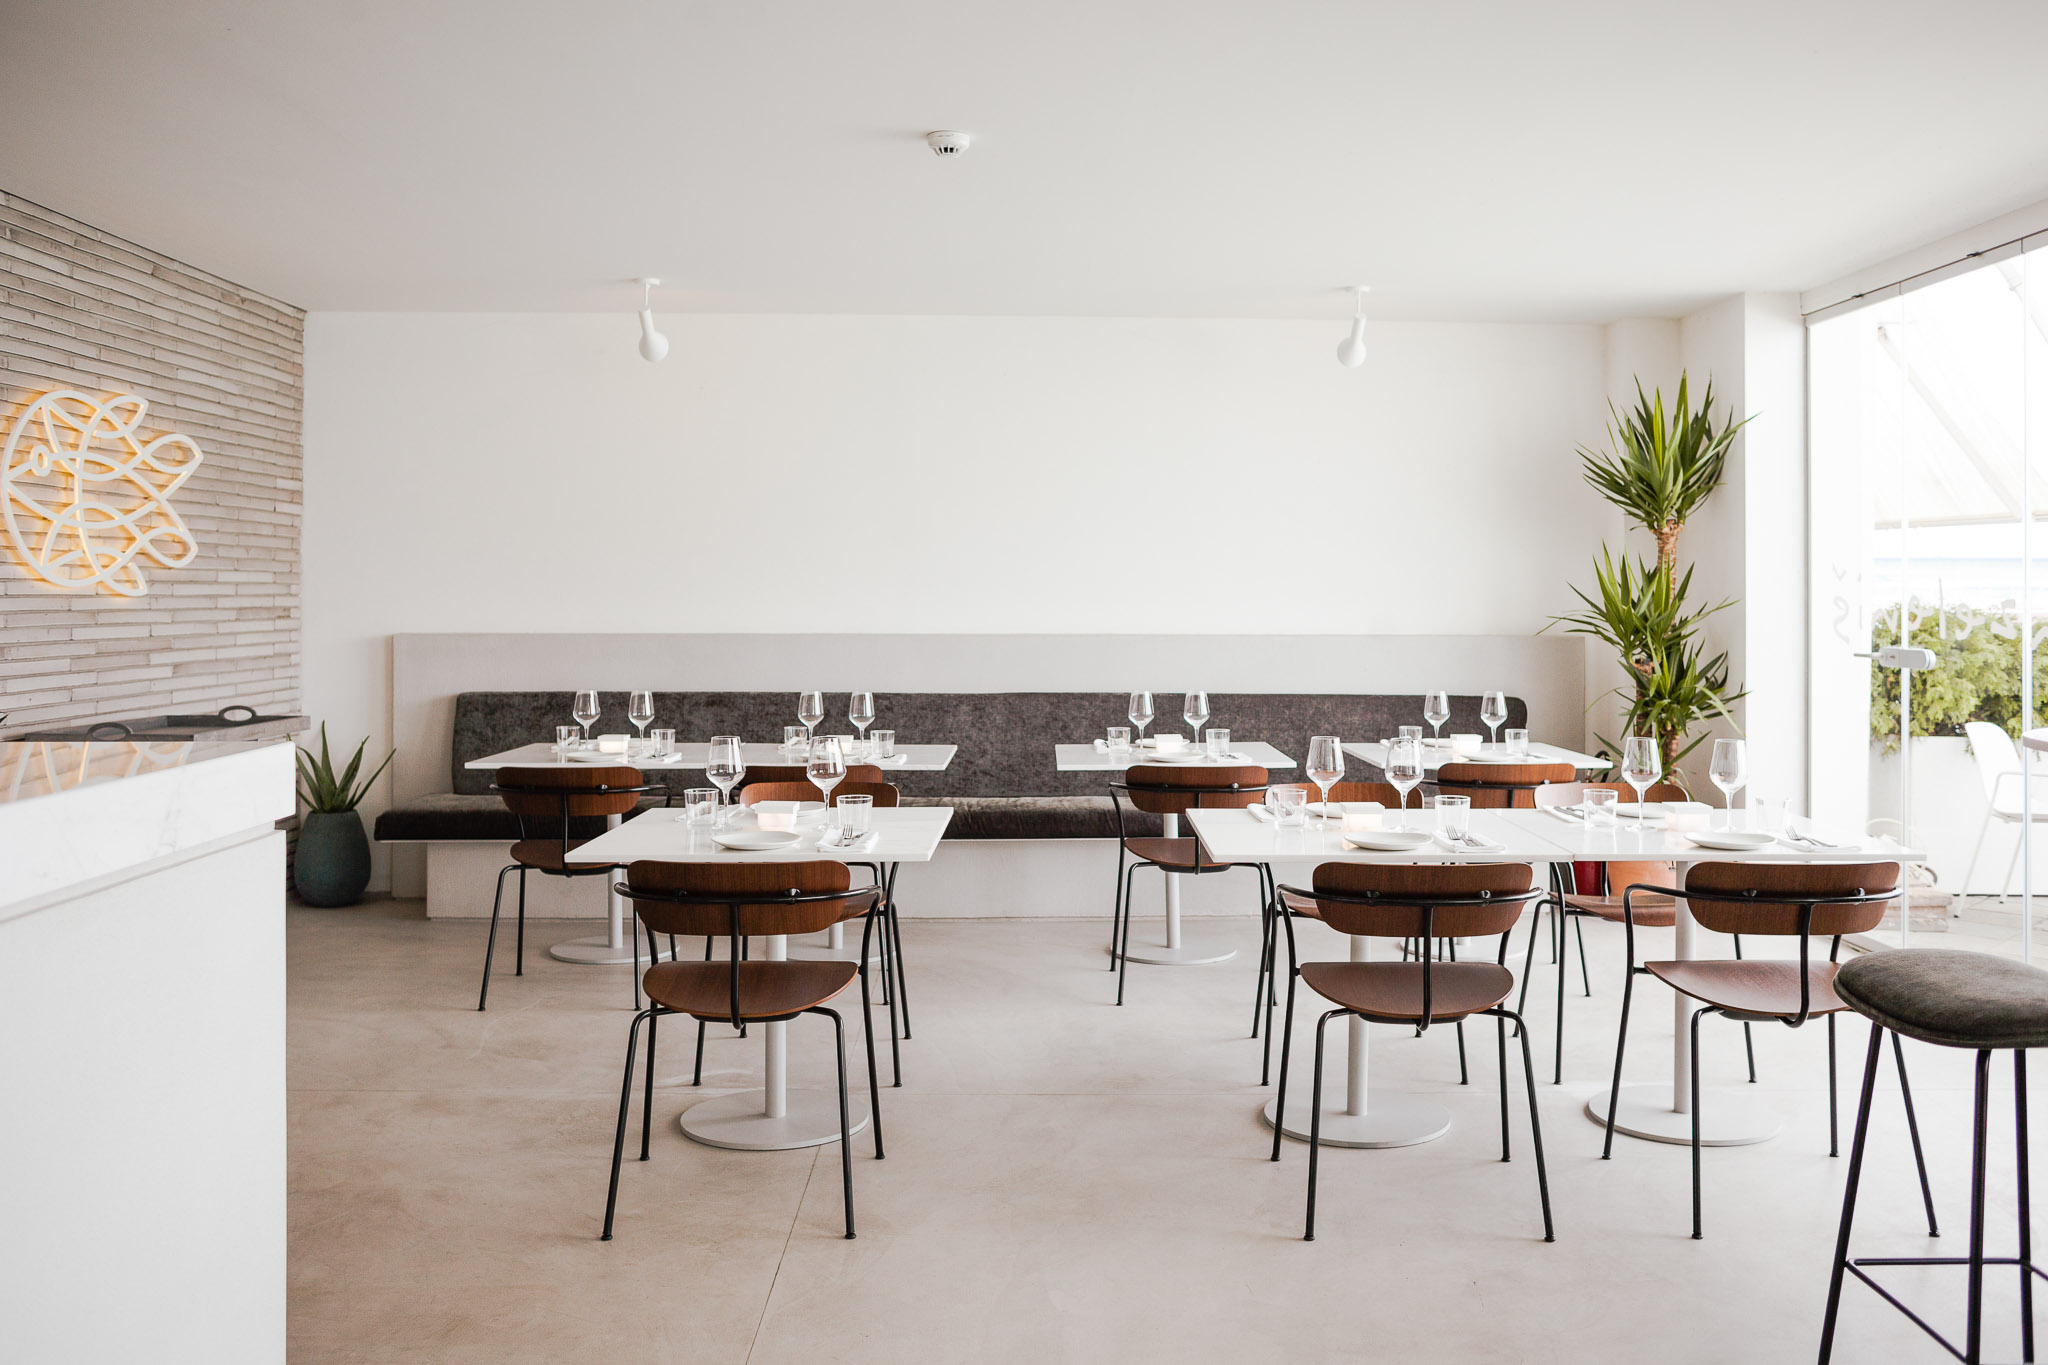 Faro restaurant by Fish Zelenish in Beton Hala, Belgrade, Serbia. Interior photography by Jovana Rakezic